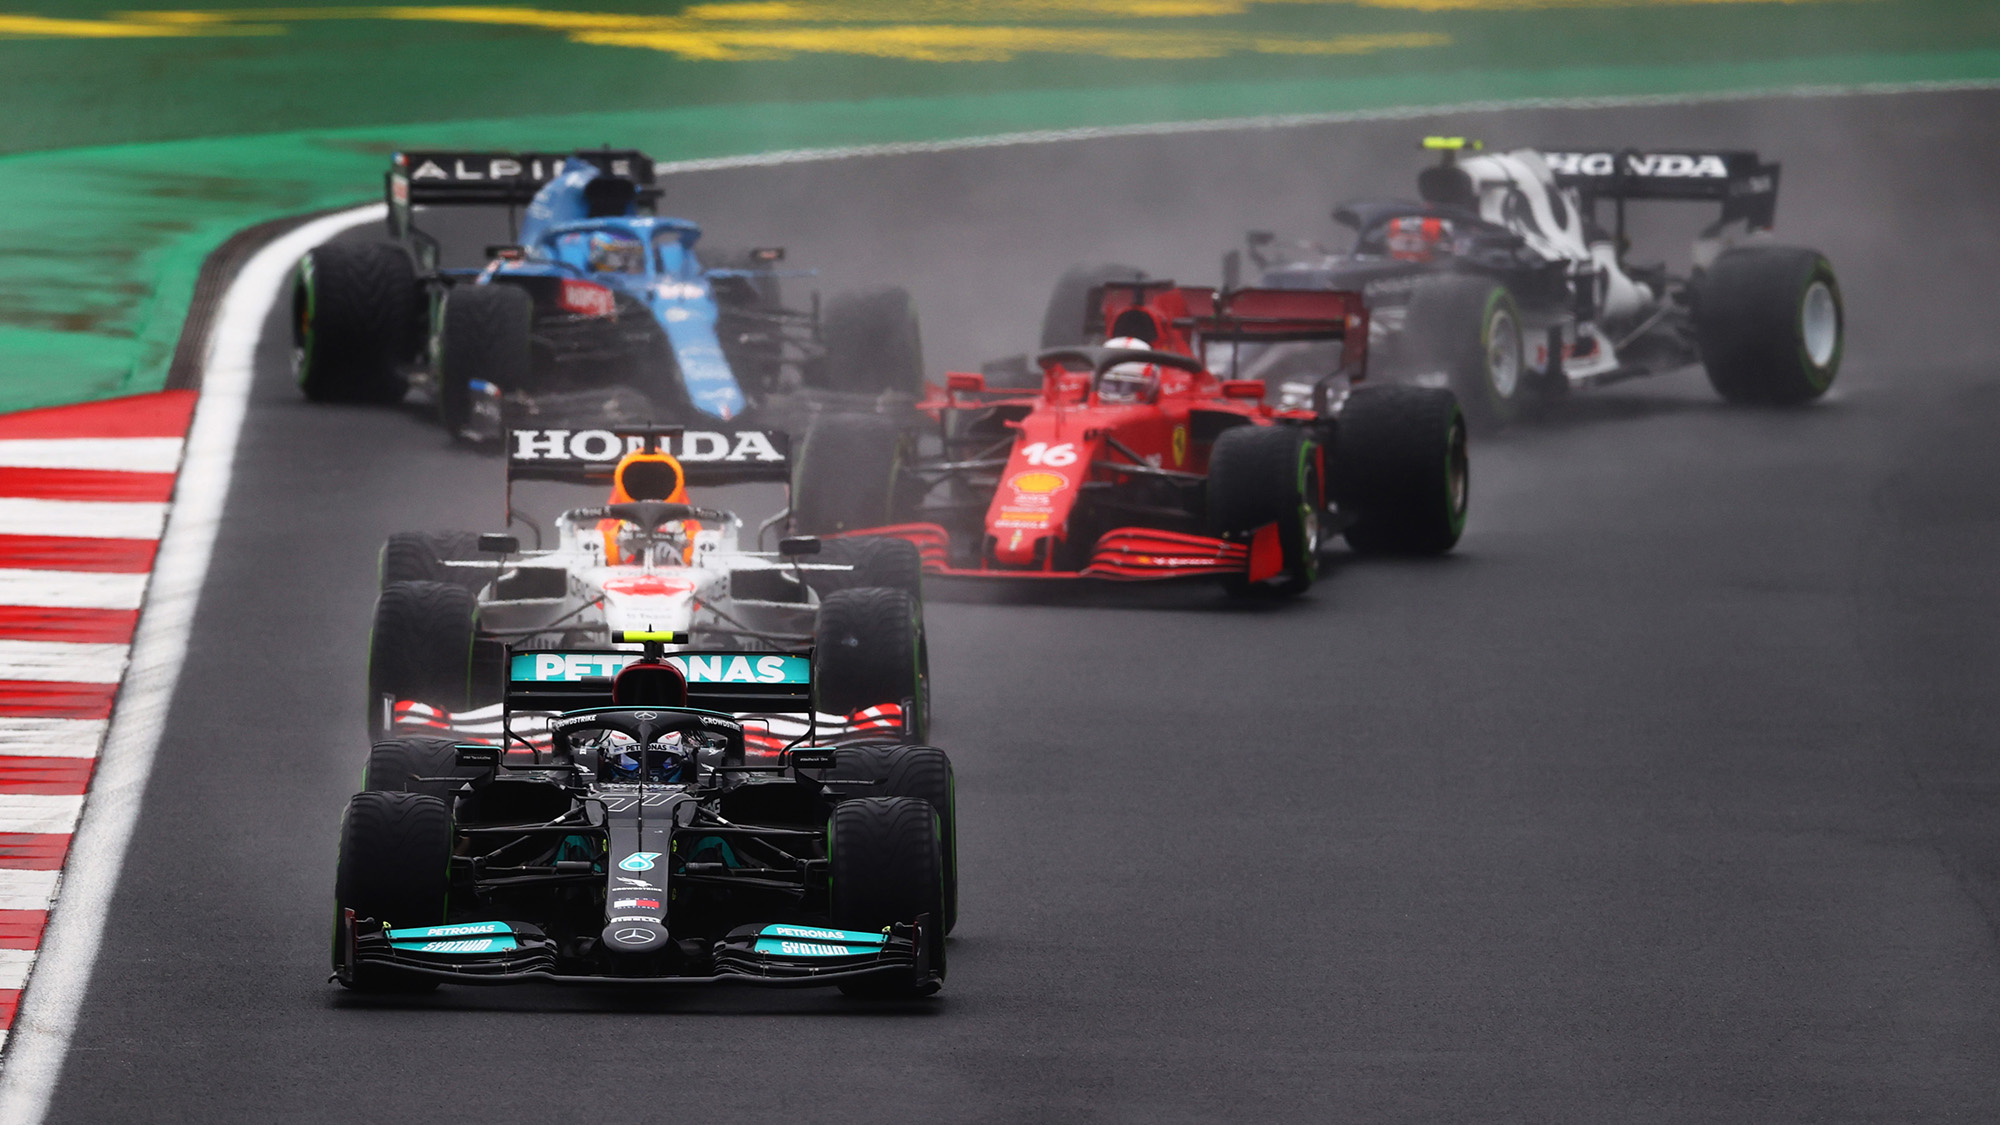 Valtteri Bottas leads and Fernando Alonso spins at the start of the 2021 Turkish Grand Prix